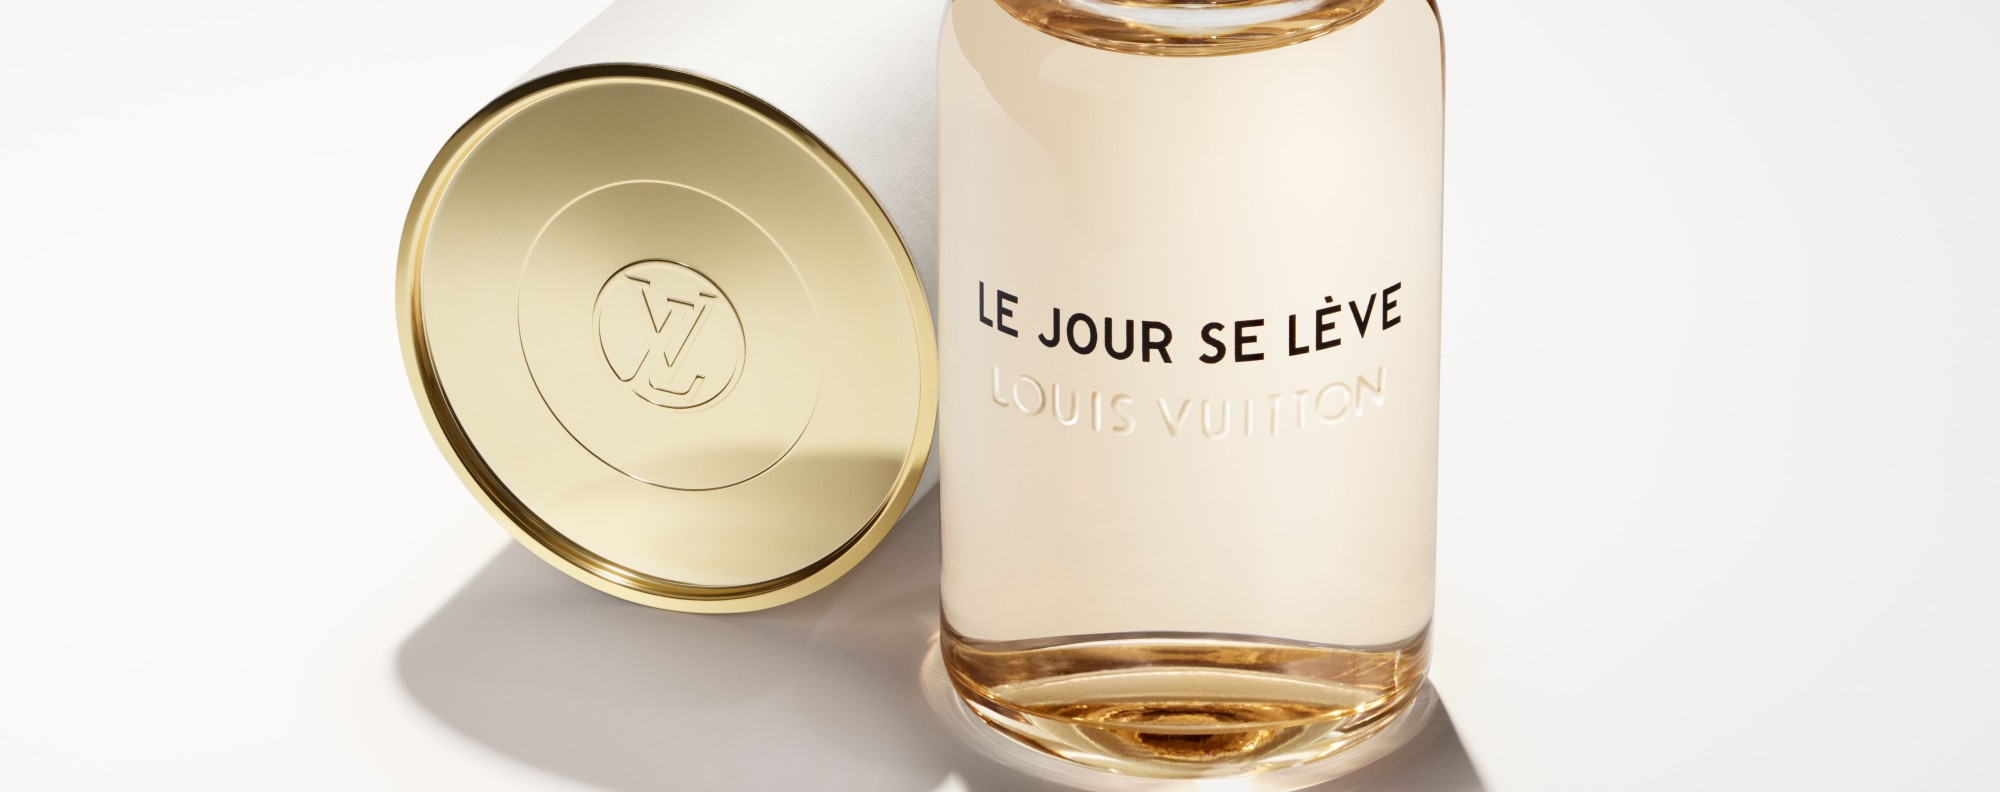 Daybreak Approaches Louis Vuitton To Hit High Notes With New Haute Master Spray Cologne Black Musk The Fragrance Le Jour Se Lve Goes On Sale From March